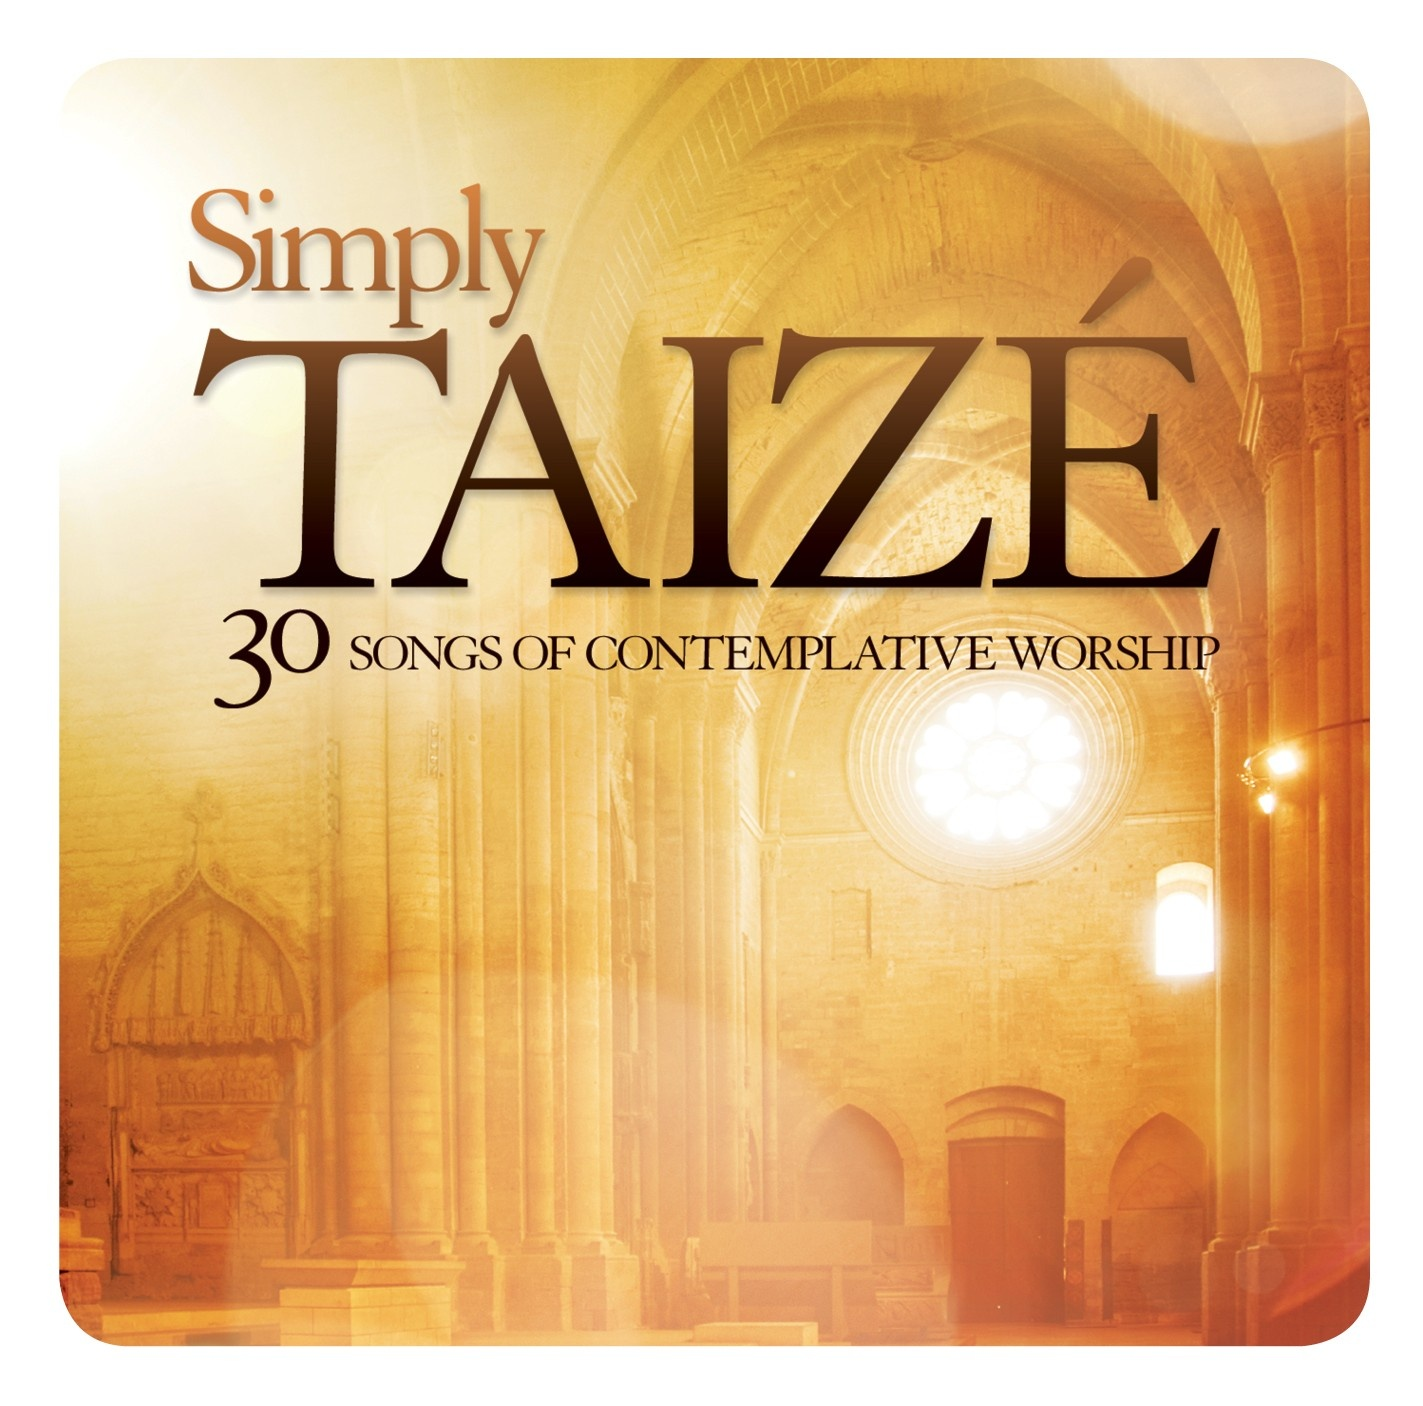 Simply Taizé - 30 Songs Of Contemplative Worship (2CD)